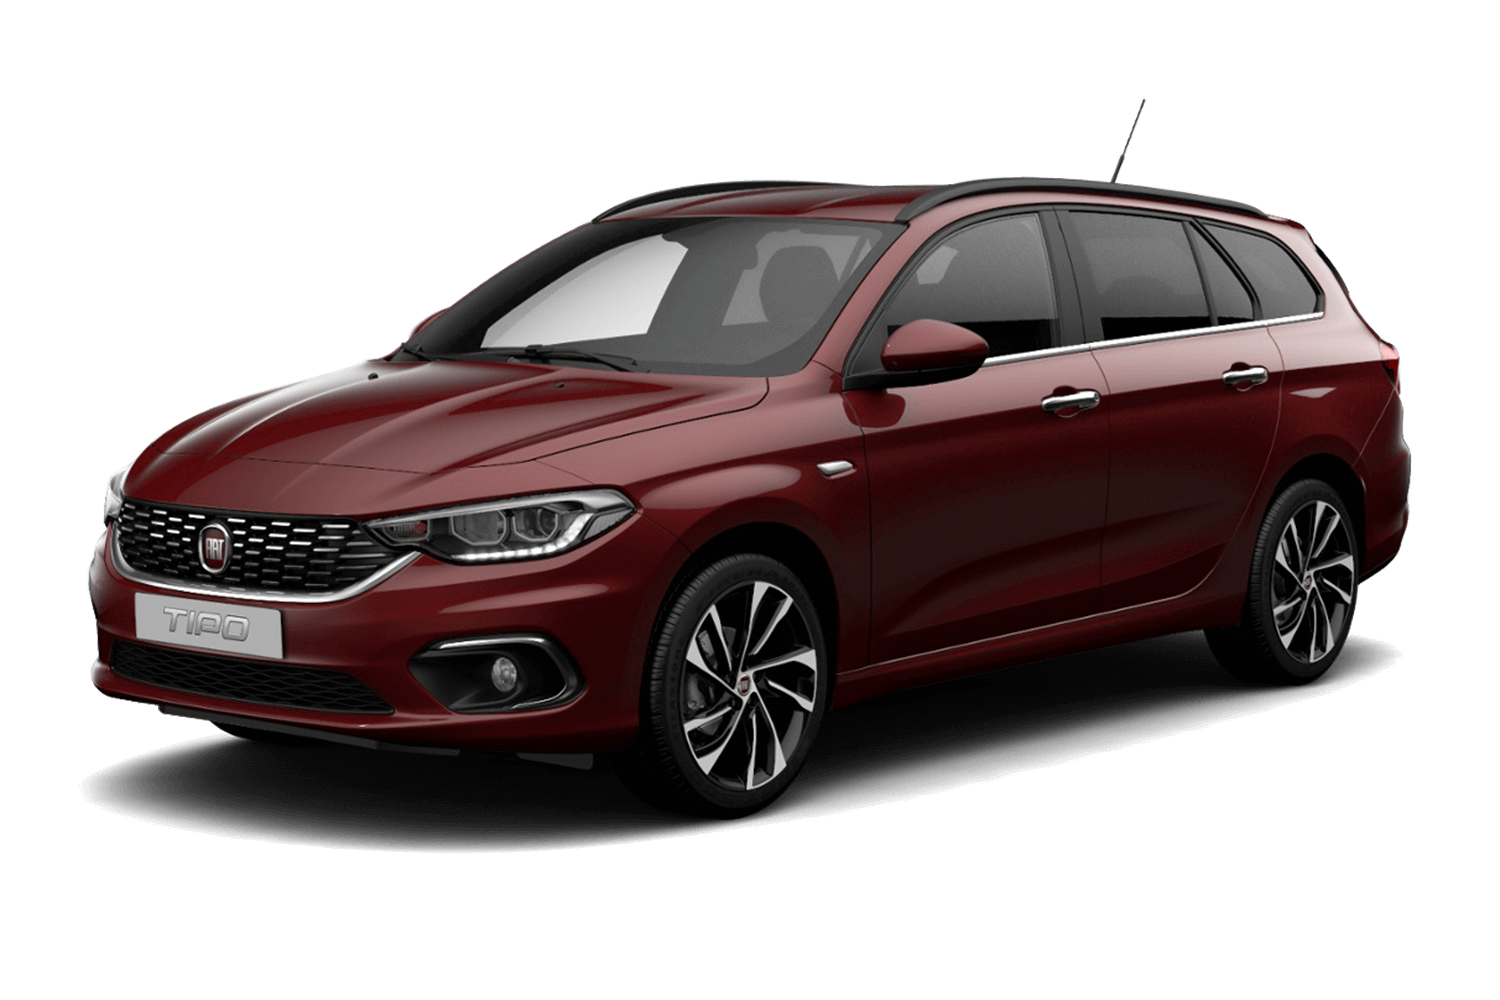 fiat-tipo-kombi-lounge-18tum-red-metallic